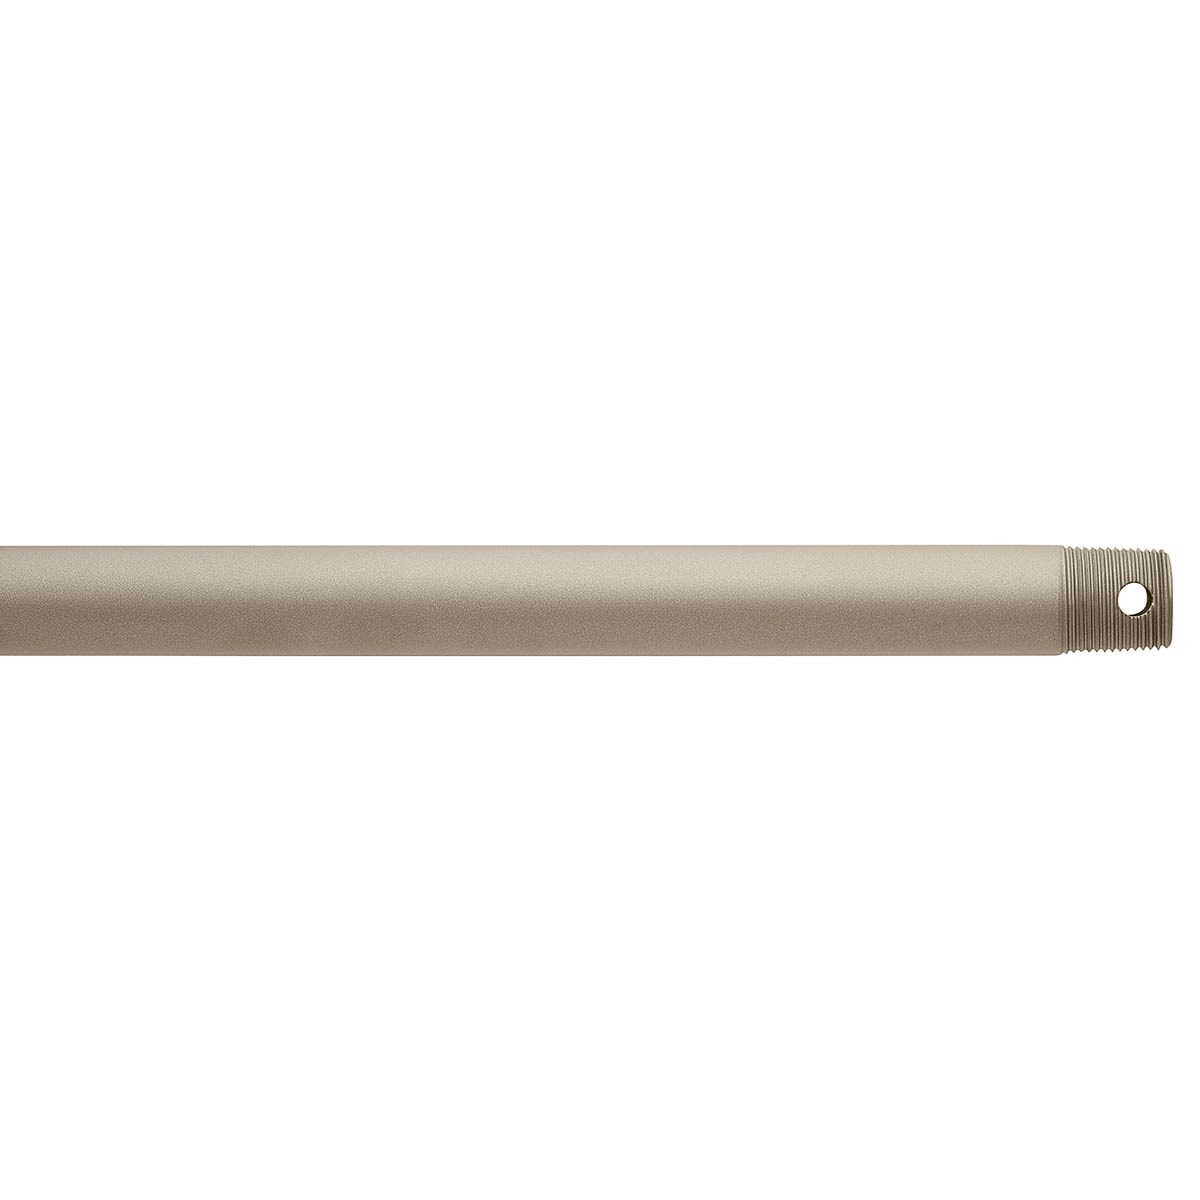 "Dual Threaded 72"" Downrod Antique Satin Silver"